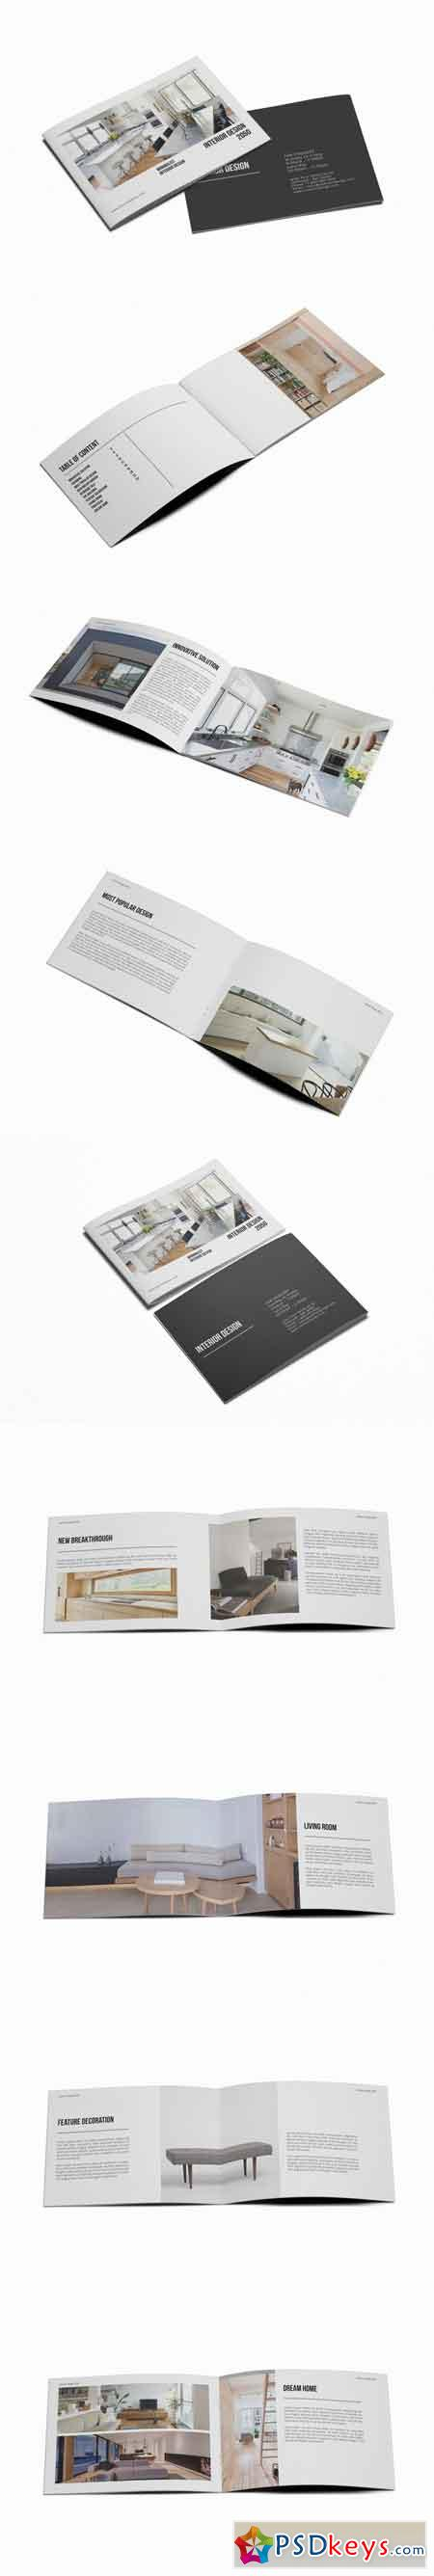 A5 Interior Design Brochure Catalog 3518575